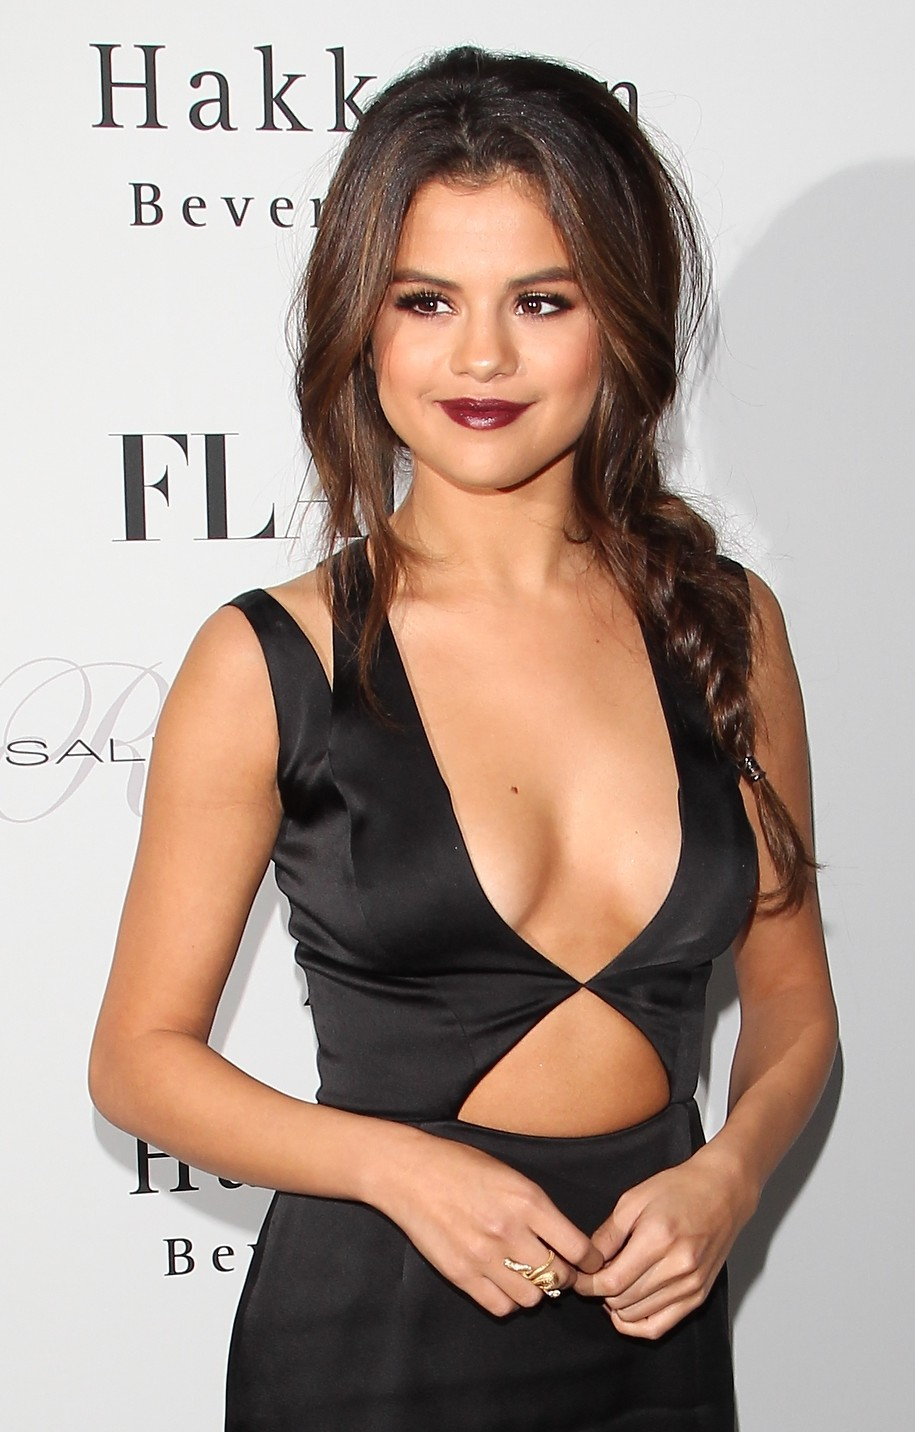 Selena Gomez Amazing Tits And Cleavage